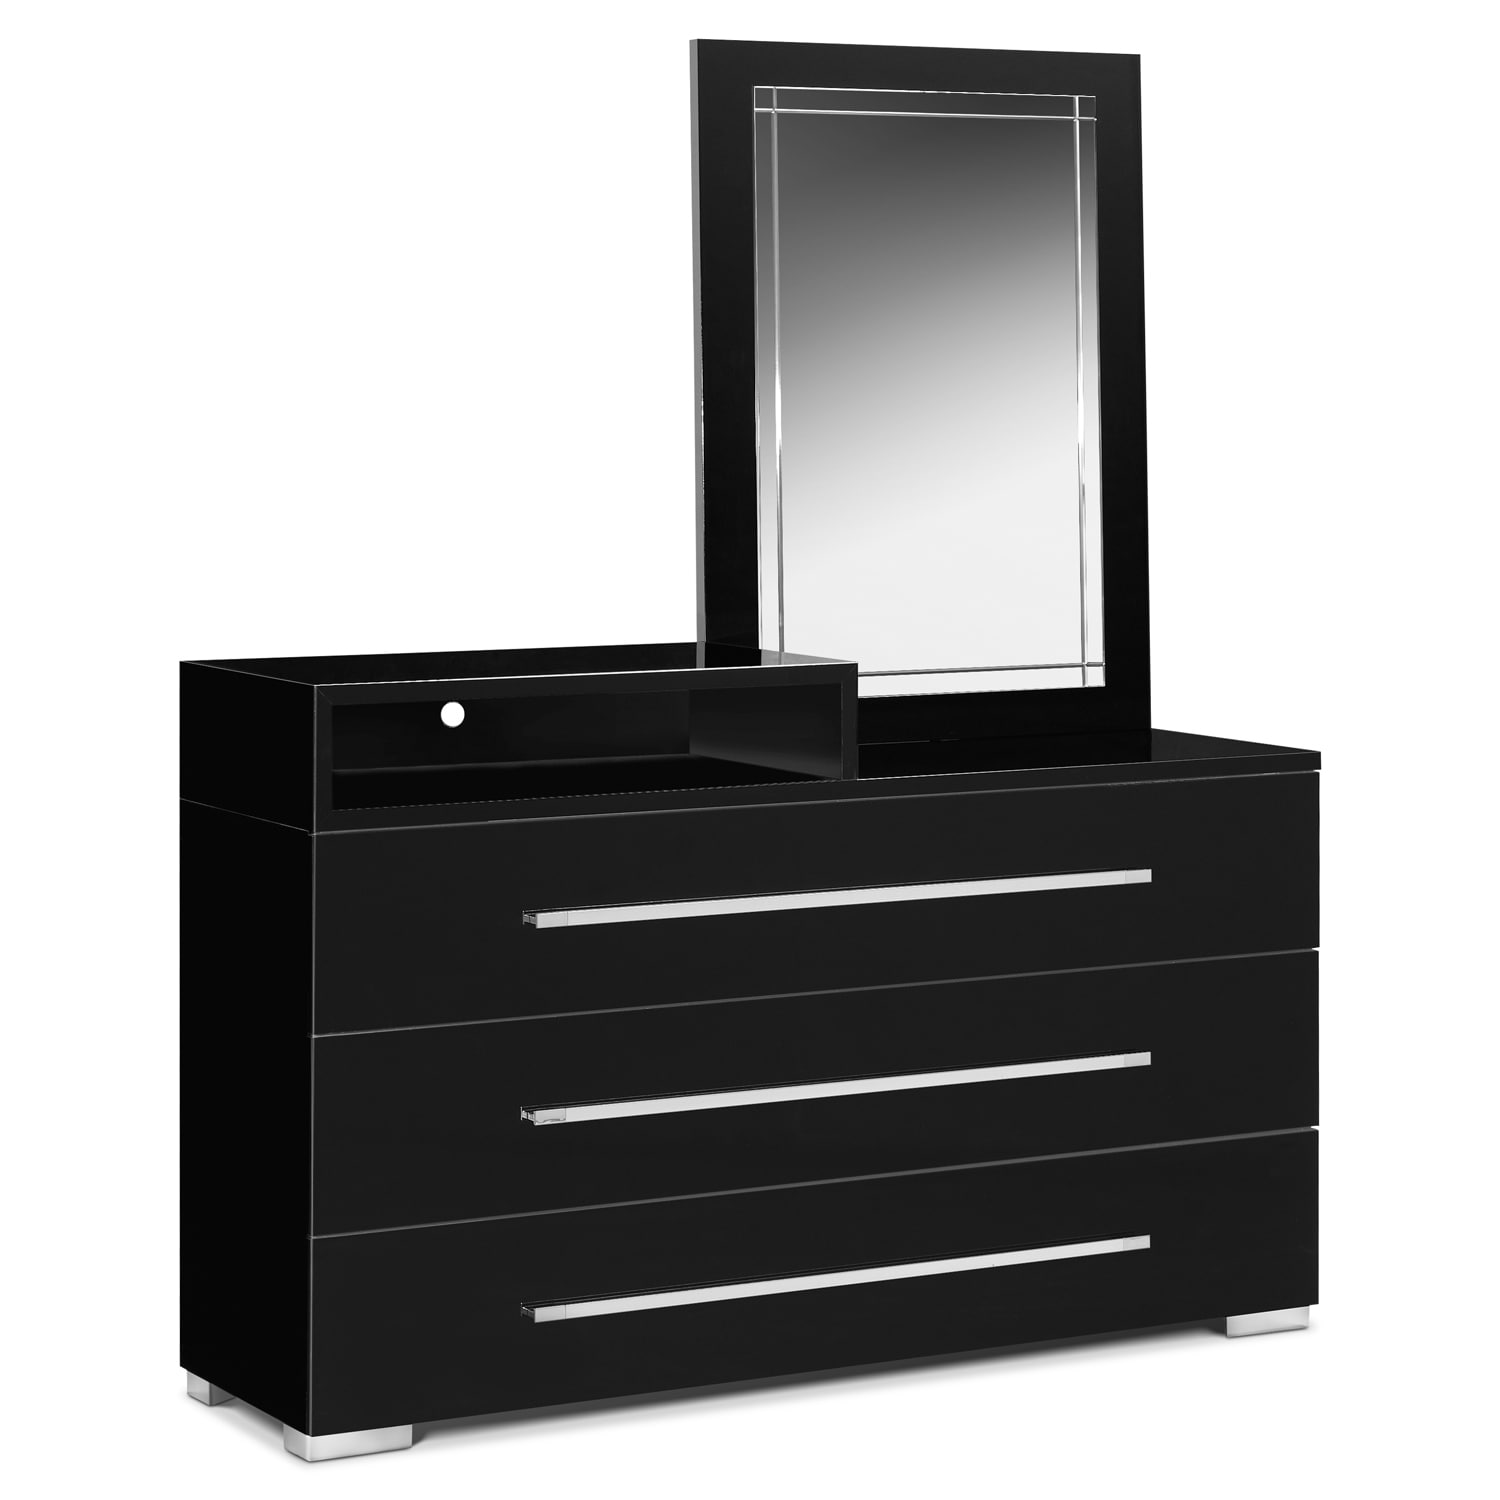 Modern bedroom dresser with mirror - Dimora 5 Piece Queen Upholstered Bedroom Set With Media Dresser Black By Factory Outlet